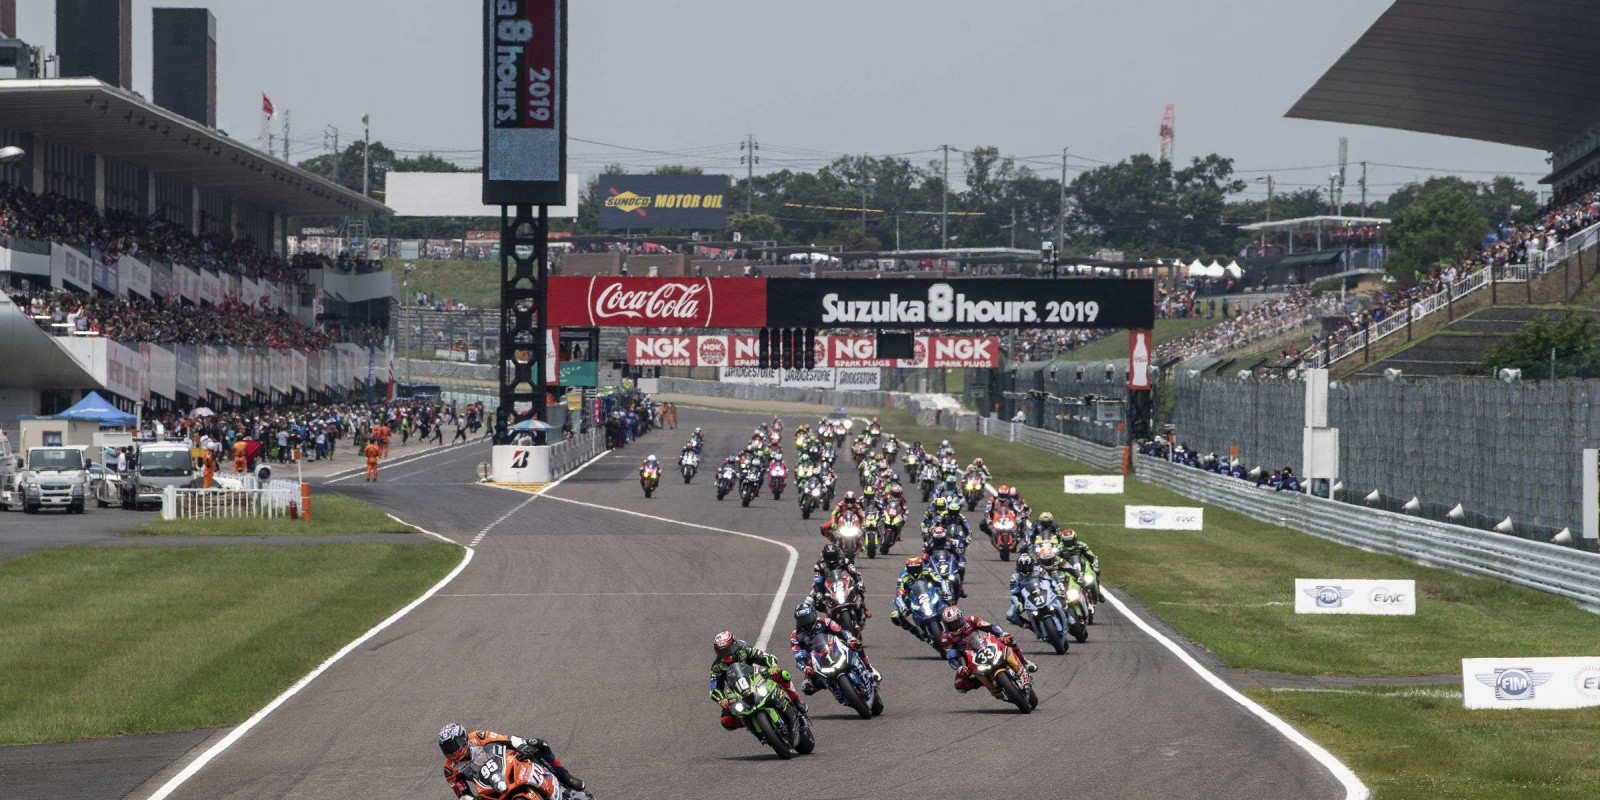 Action from the 2019 Suzuka 8hr